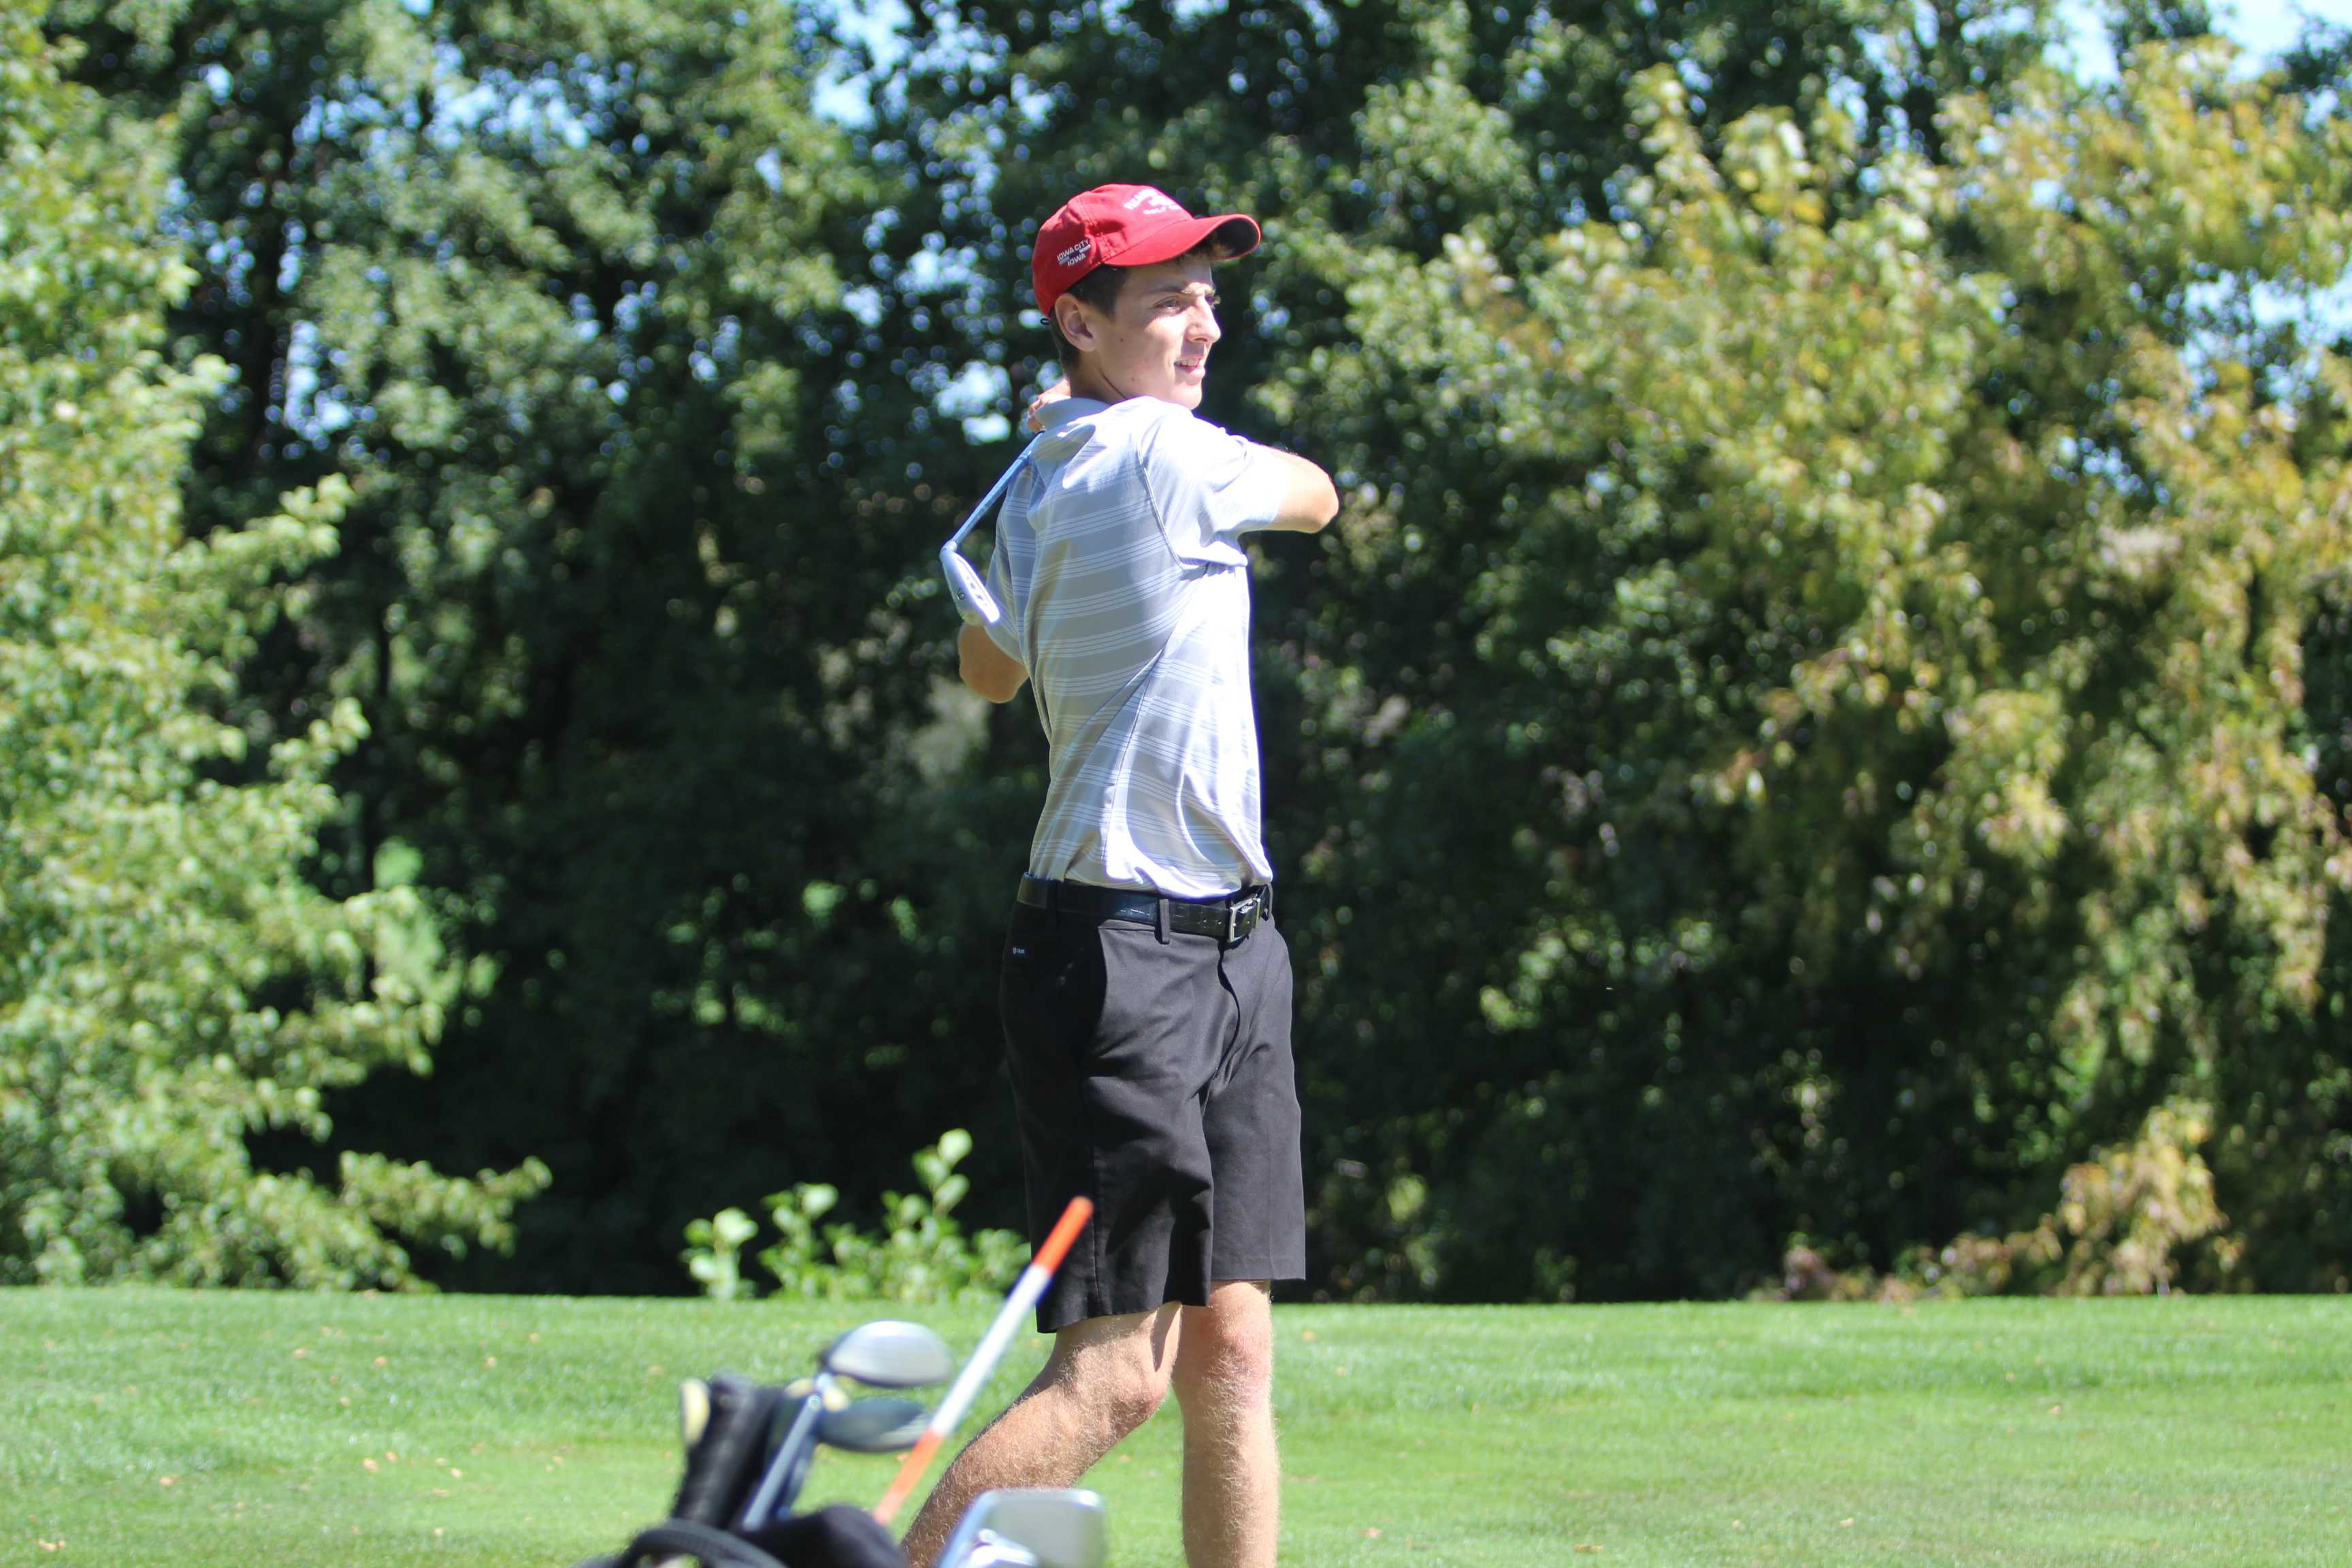 Boys Golf finishes in 10th place at districts at Elmcrest Country Club